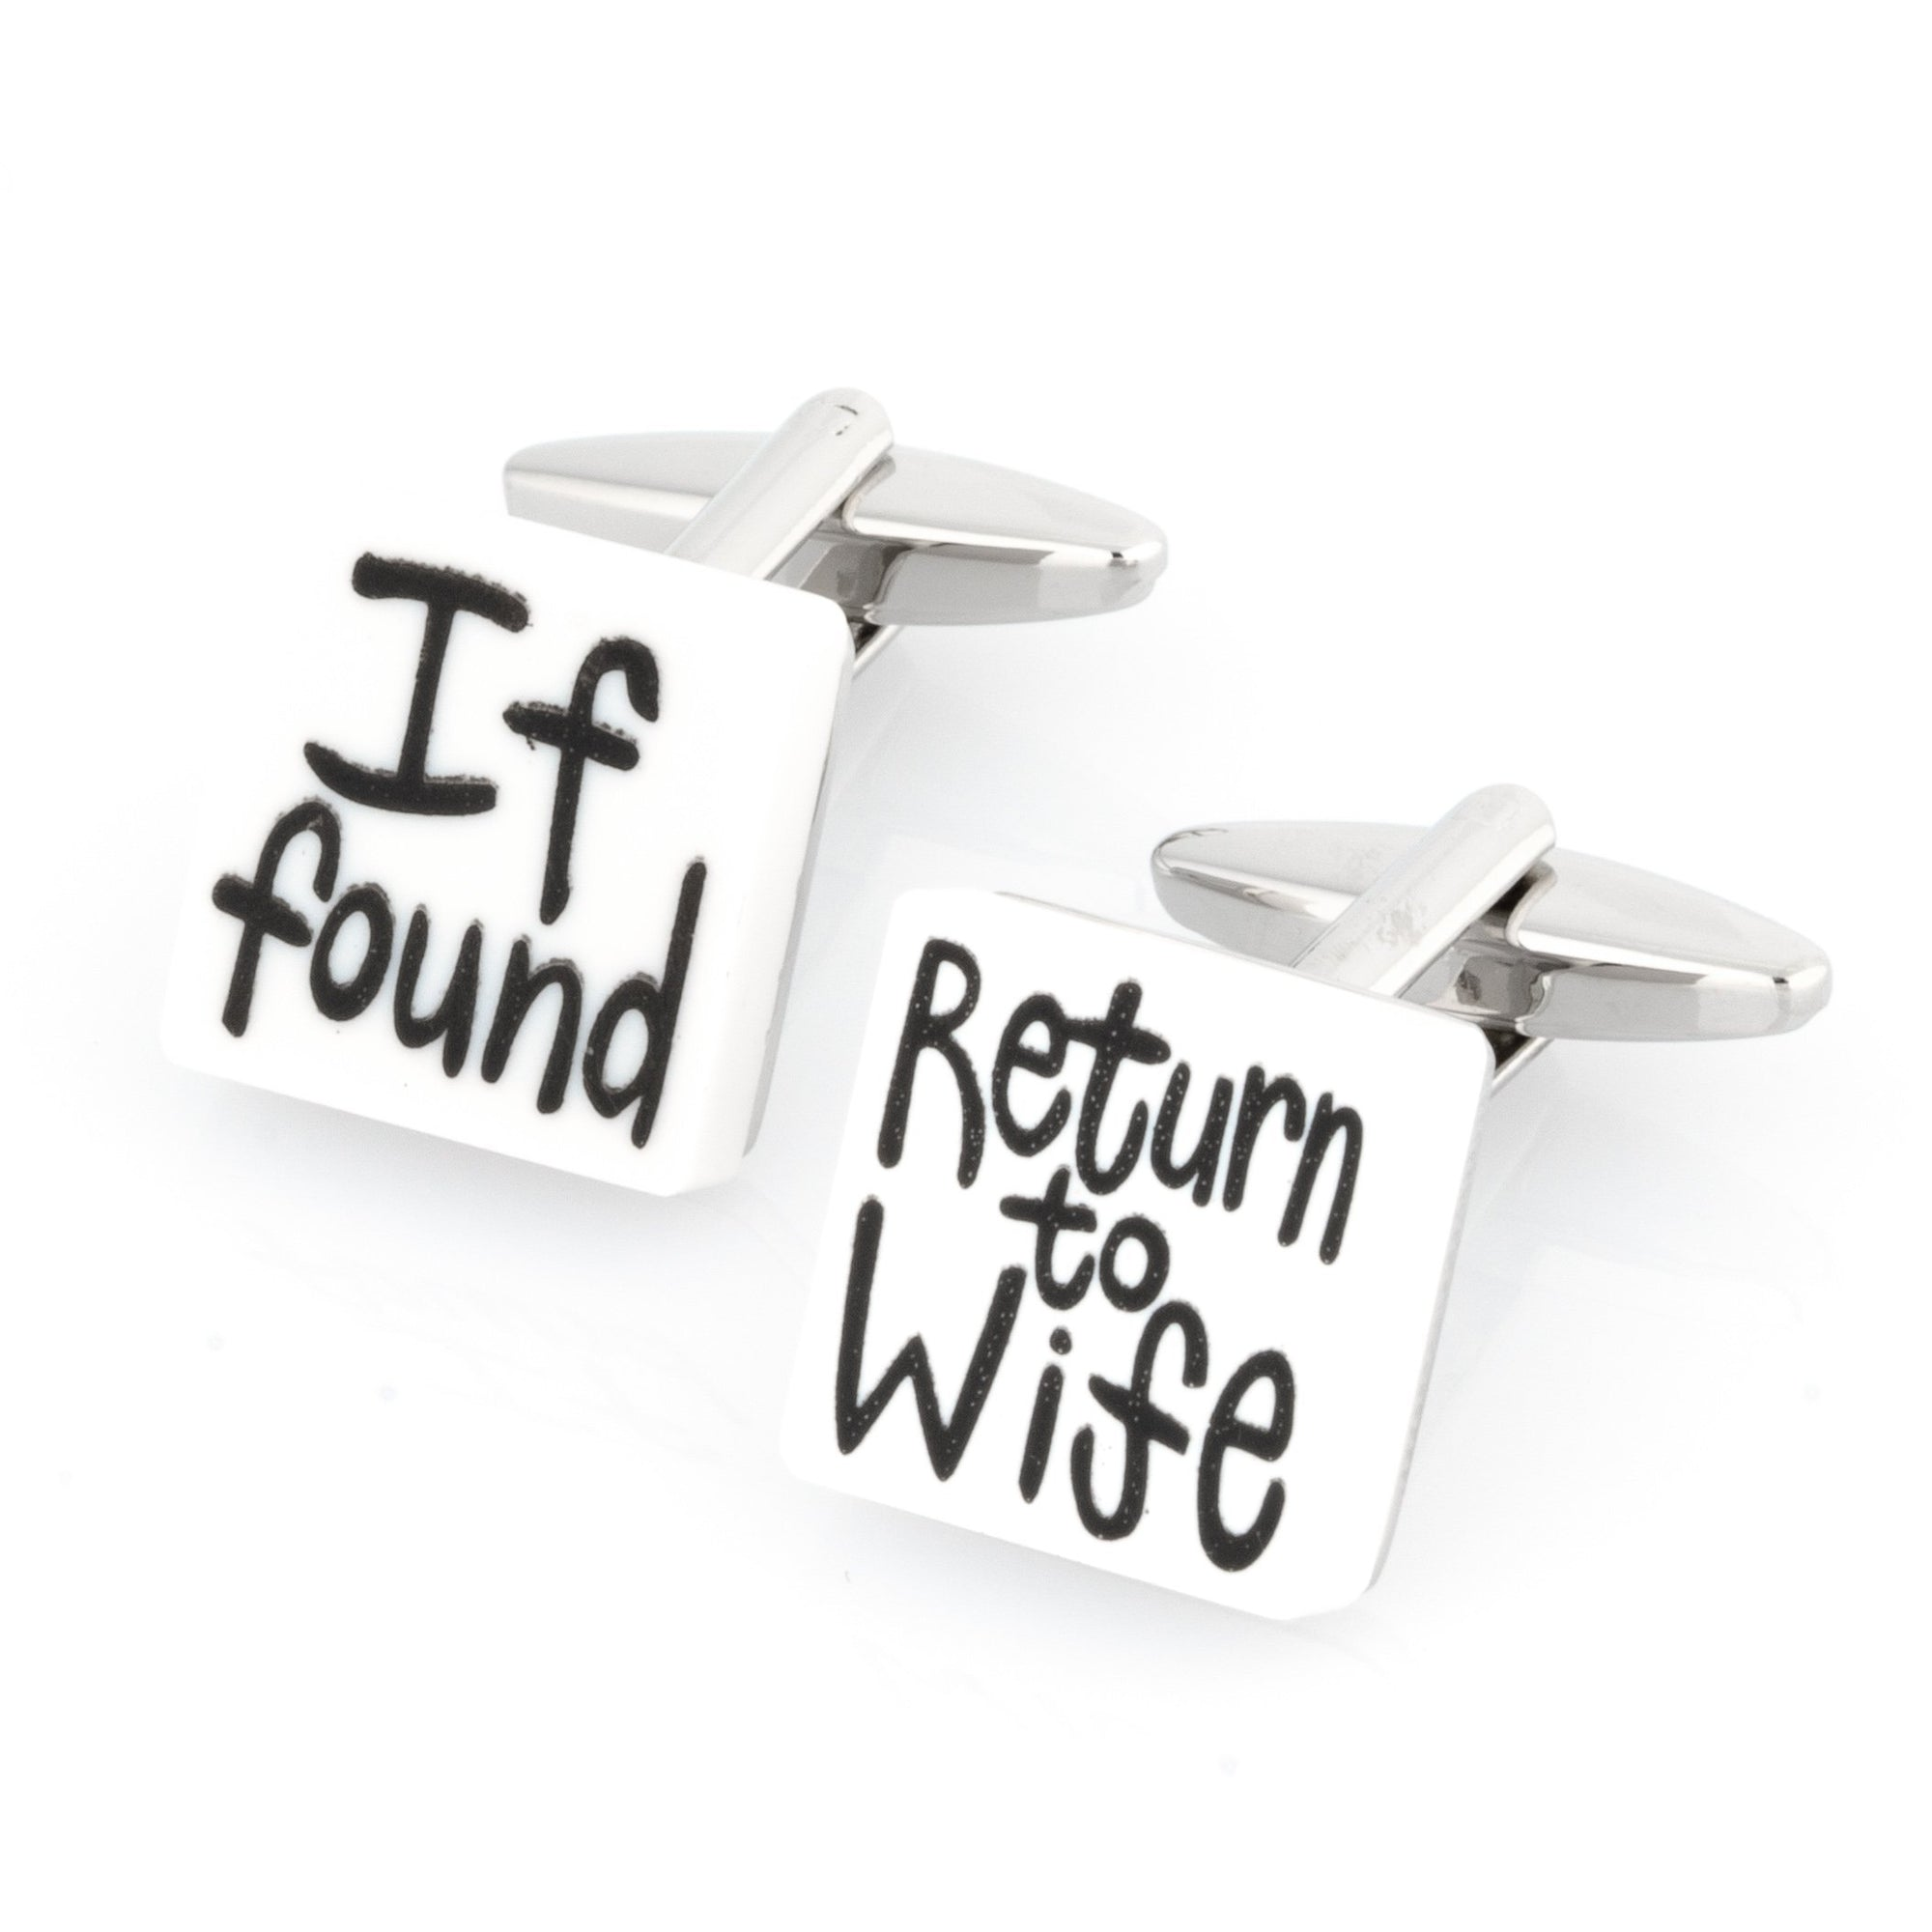 If found Return to Wife Cufflinks, Novelty Cufflinks, Cuffed.com.au, CL8480, Wedding, Words and Phrases, Clinks Australia